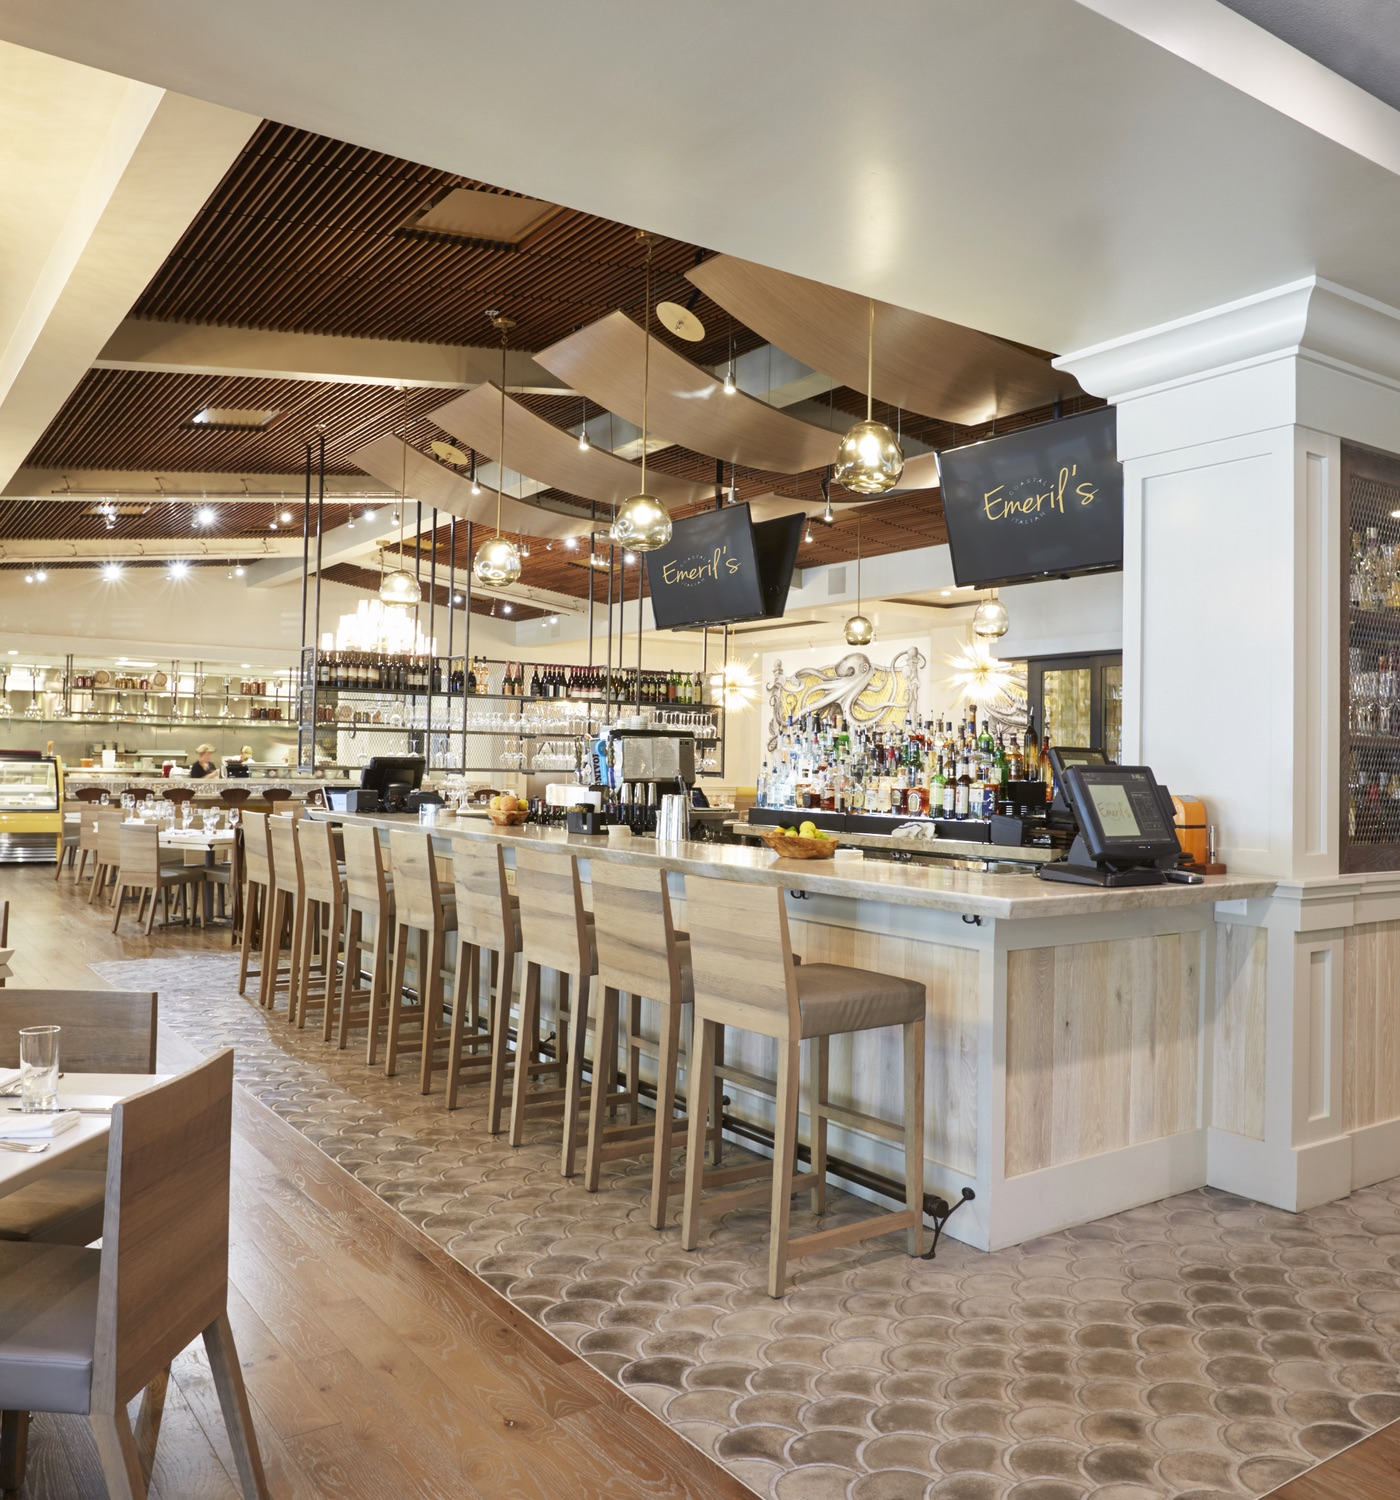 Emeril Lagasse's Coast Italian Restaurant Interior - Lovelace Interiors - Bar